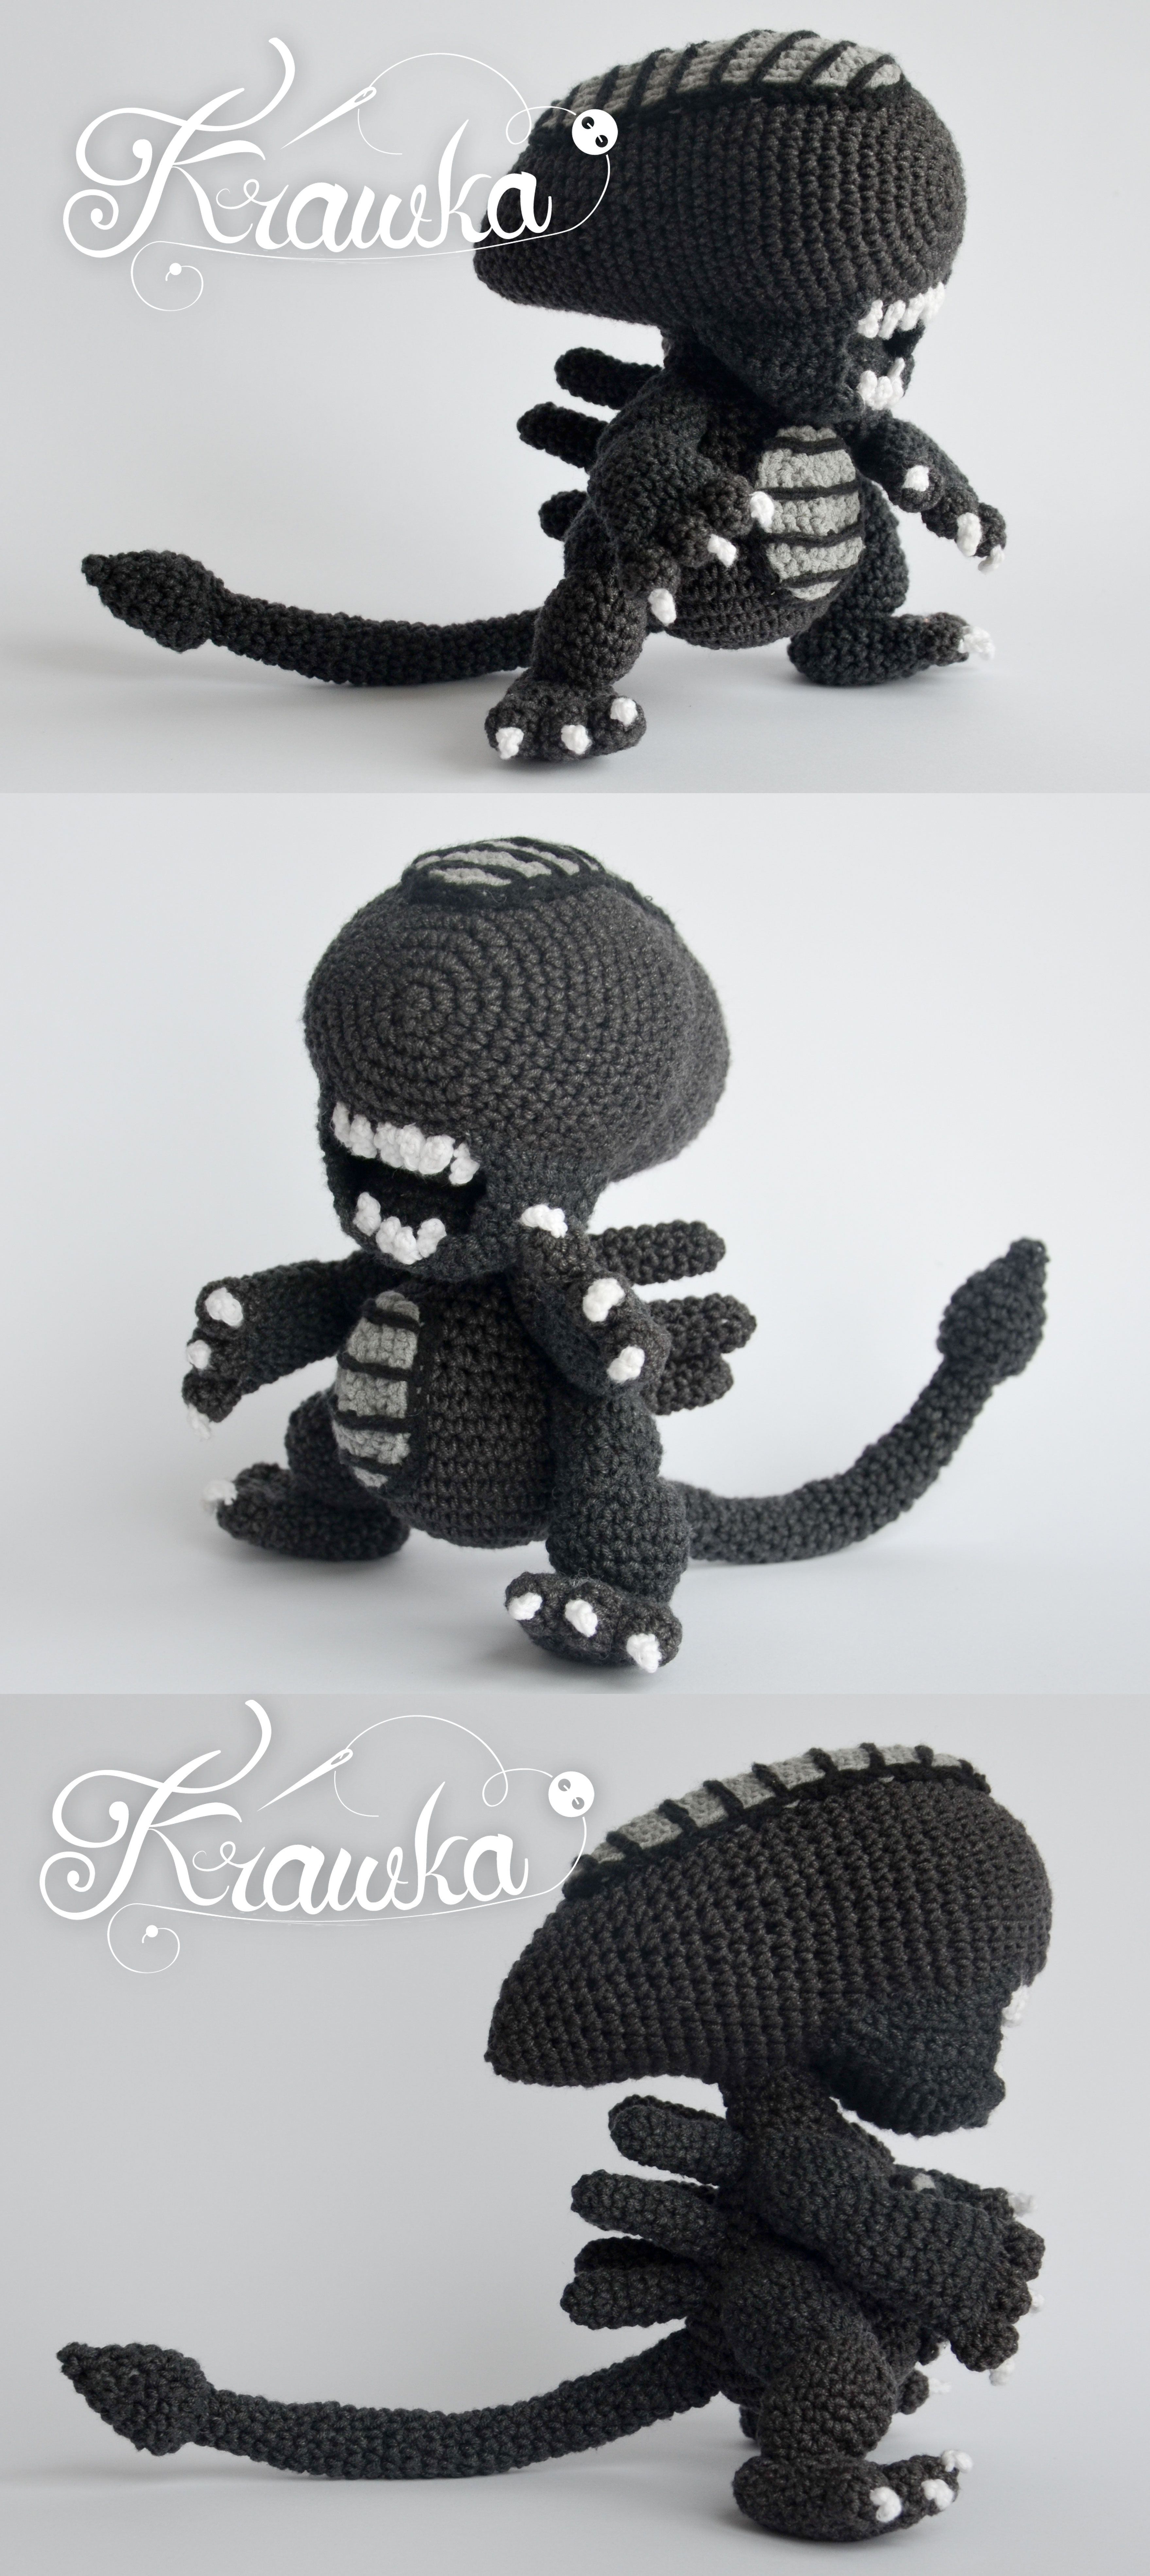 Alien xenomorph crochet pattern by Krawka - best geek crochet ...